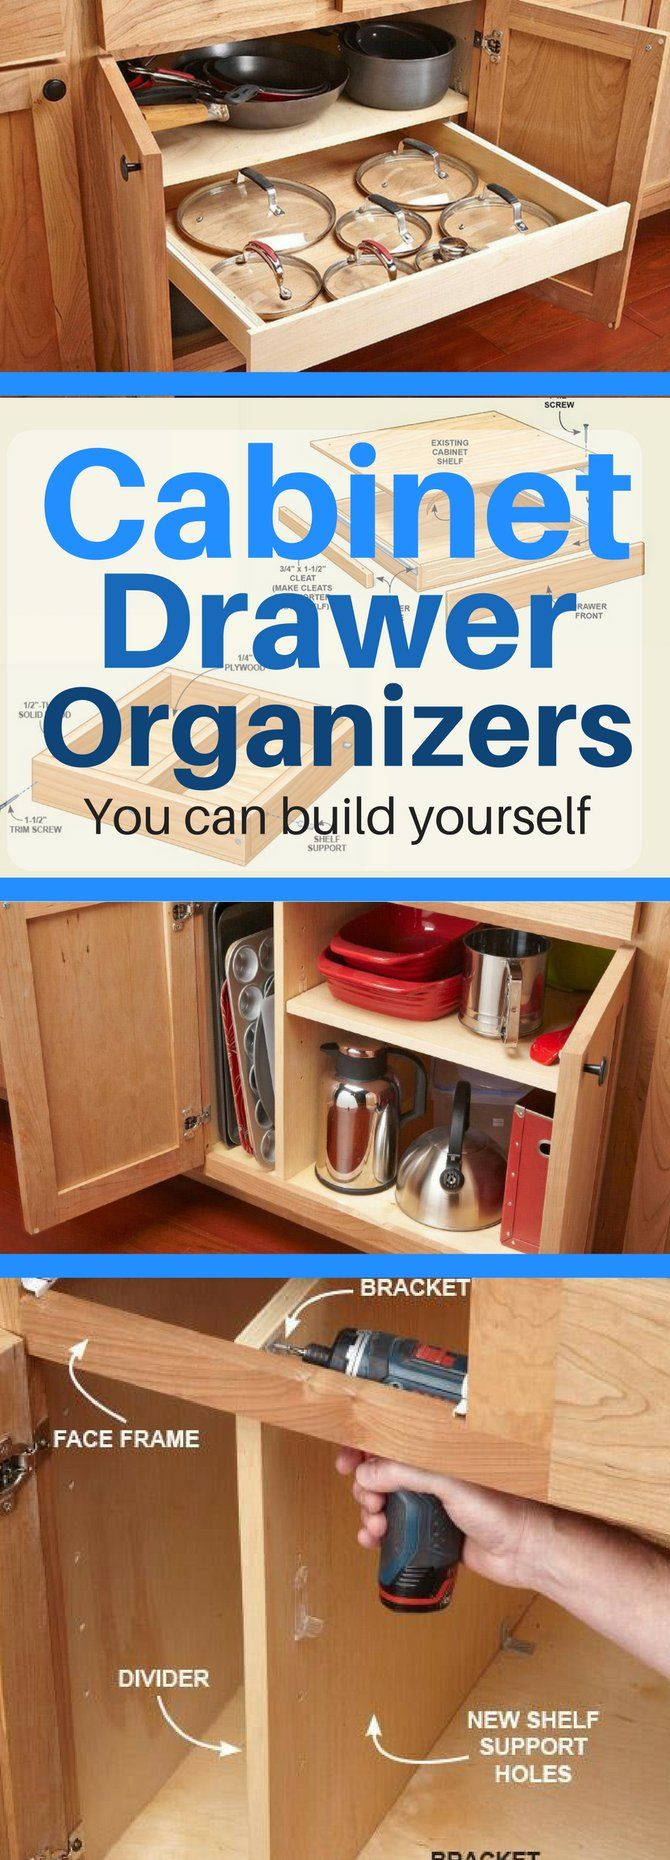 kitchen cabinet u drawer organizers you can build yourself